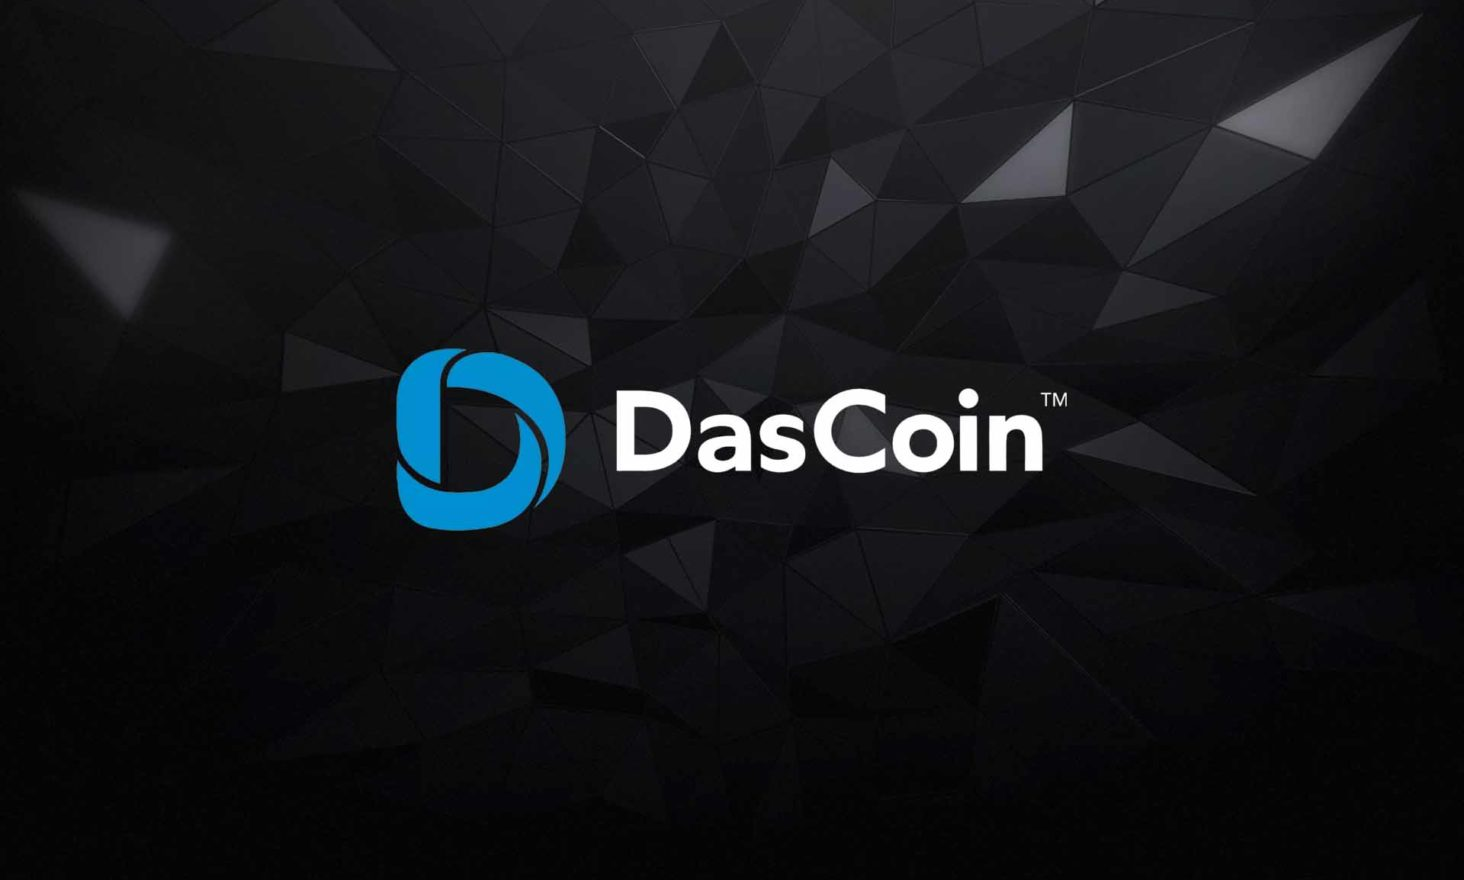 Digital Currency Goes Mainstream with DasCoin